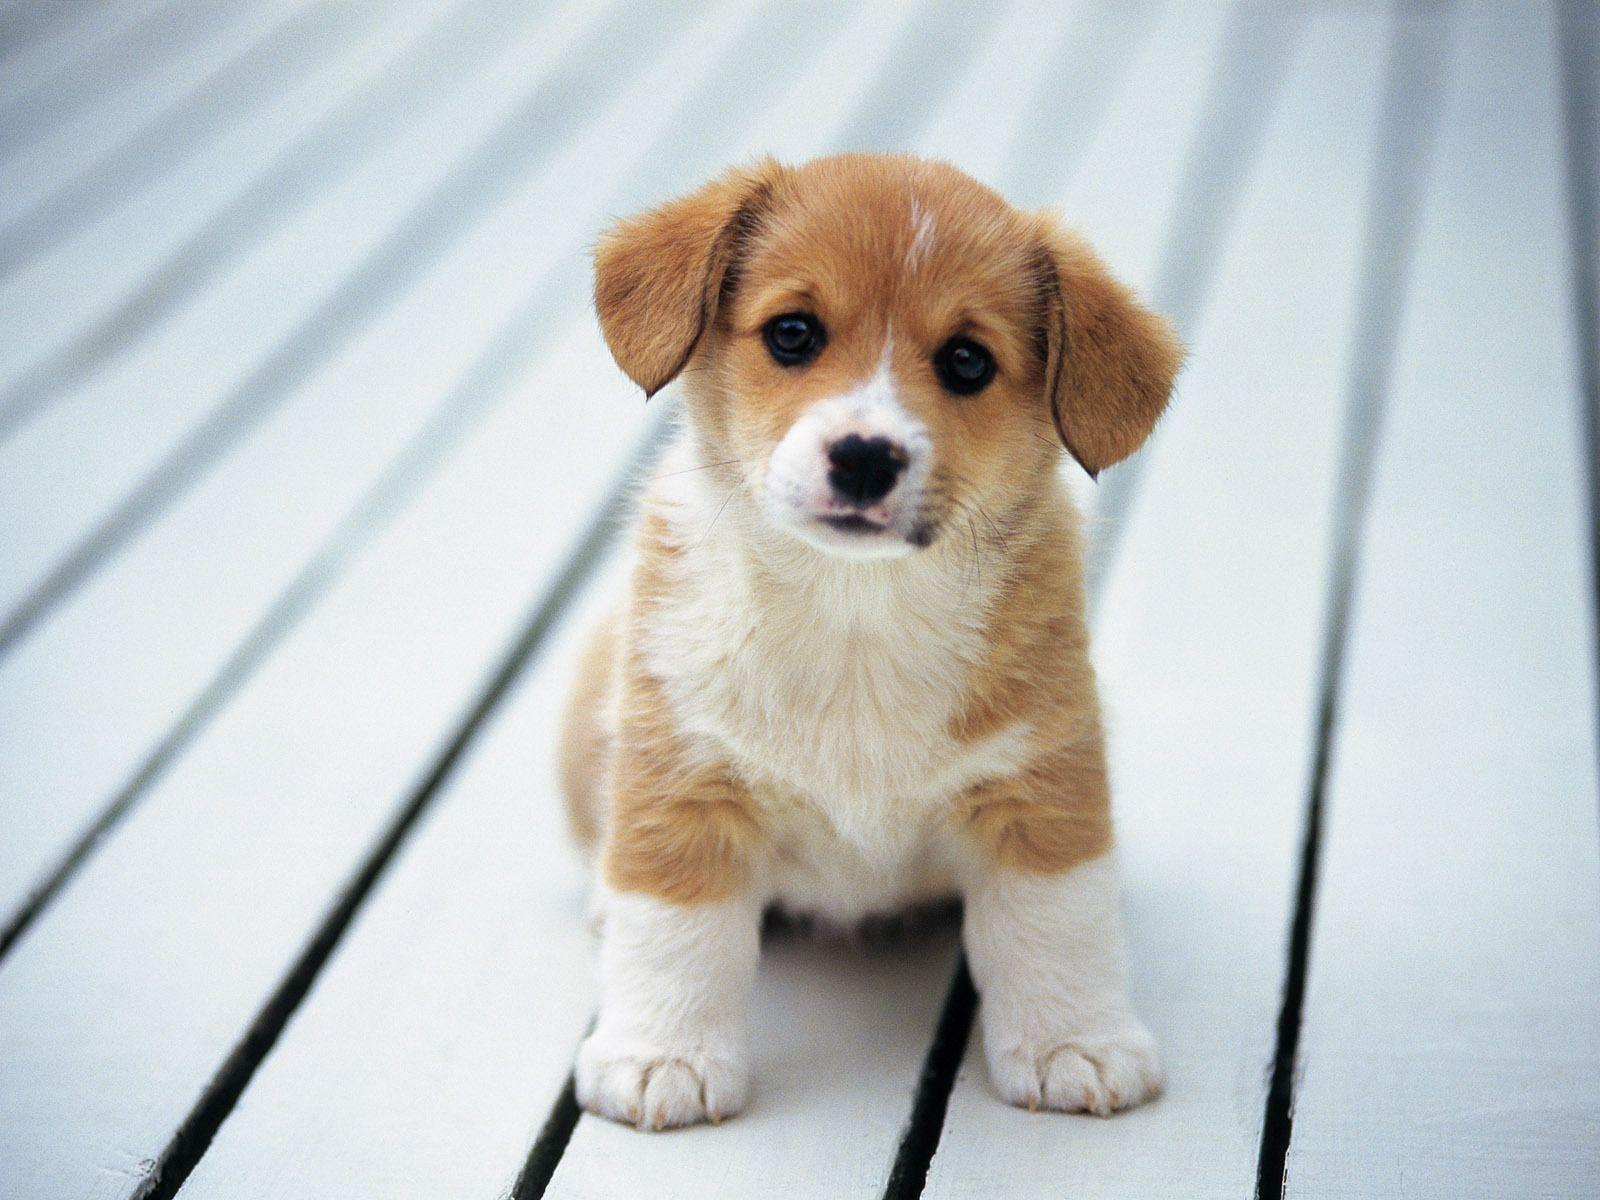 Collection of Puppies Wallpapers on HDWallpapers